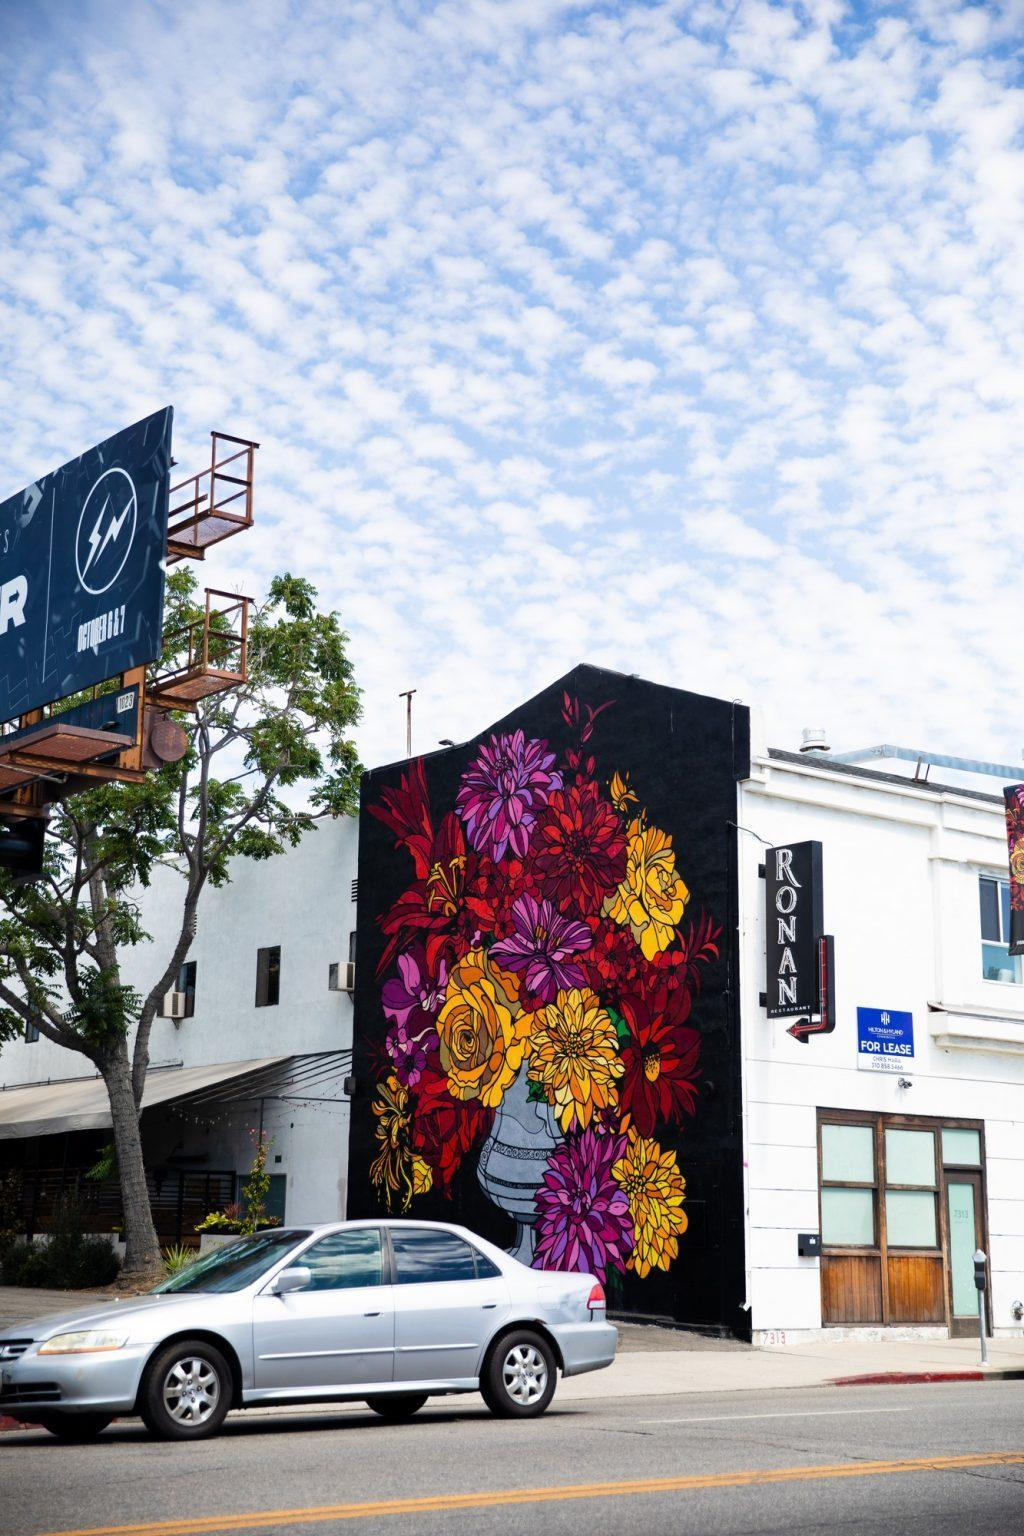 A vibrant floral mural catches the eye of people passing by Melrose Avenue. The painting brought a positive feeling to me as I walked by.